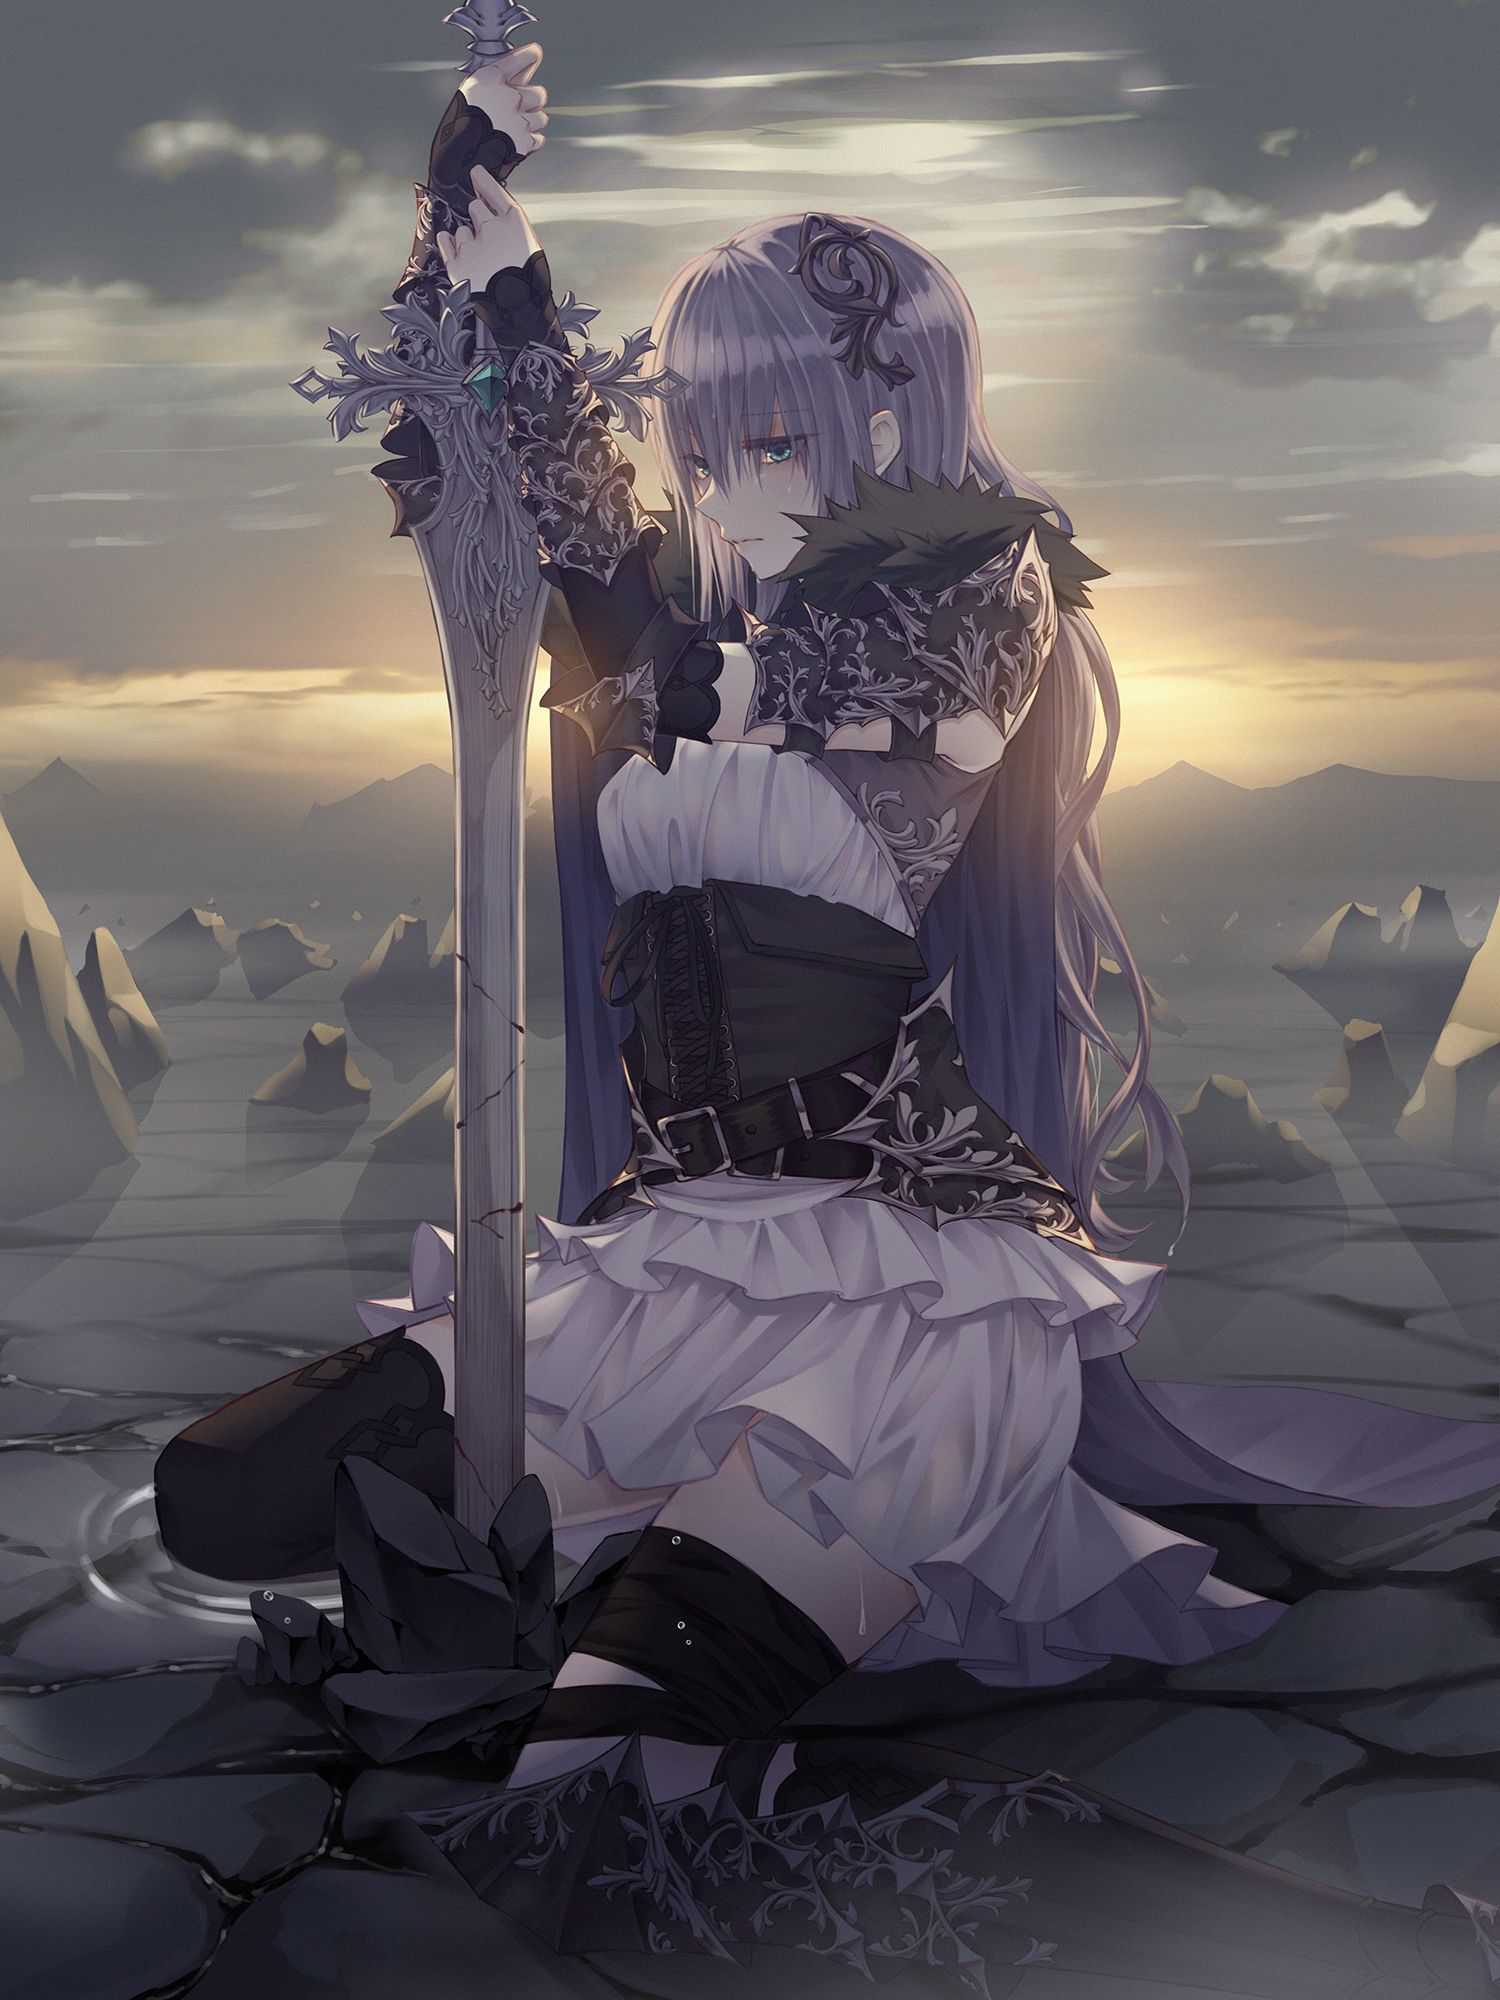 Silver Hair Sword Anime Girl Art By Kancell Chainmail Anime